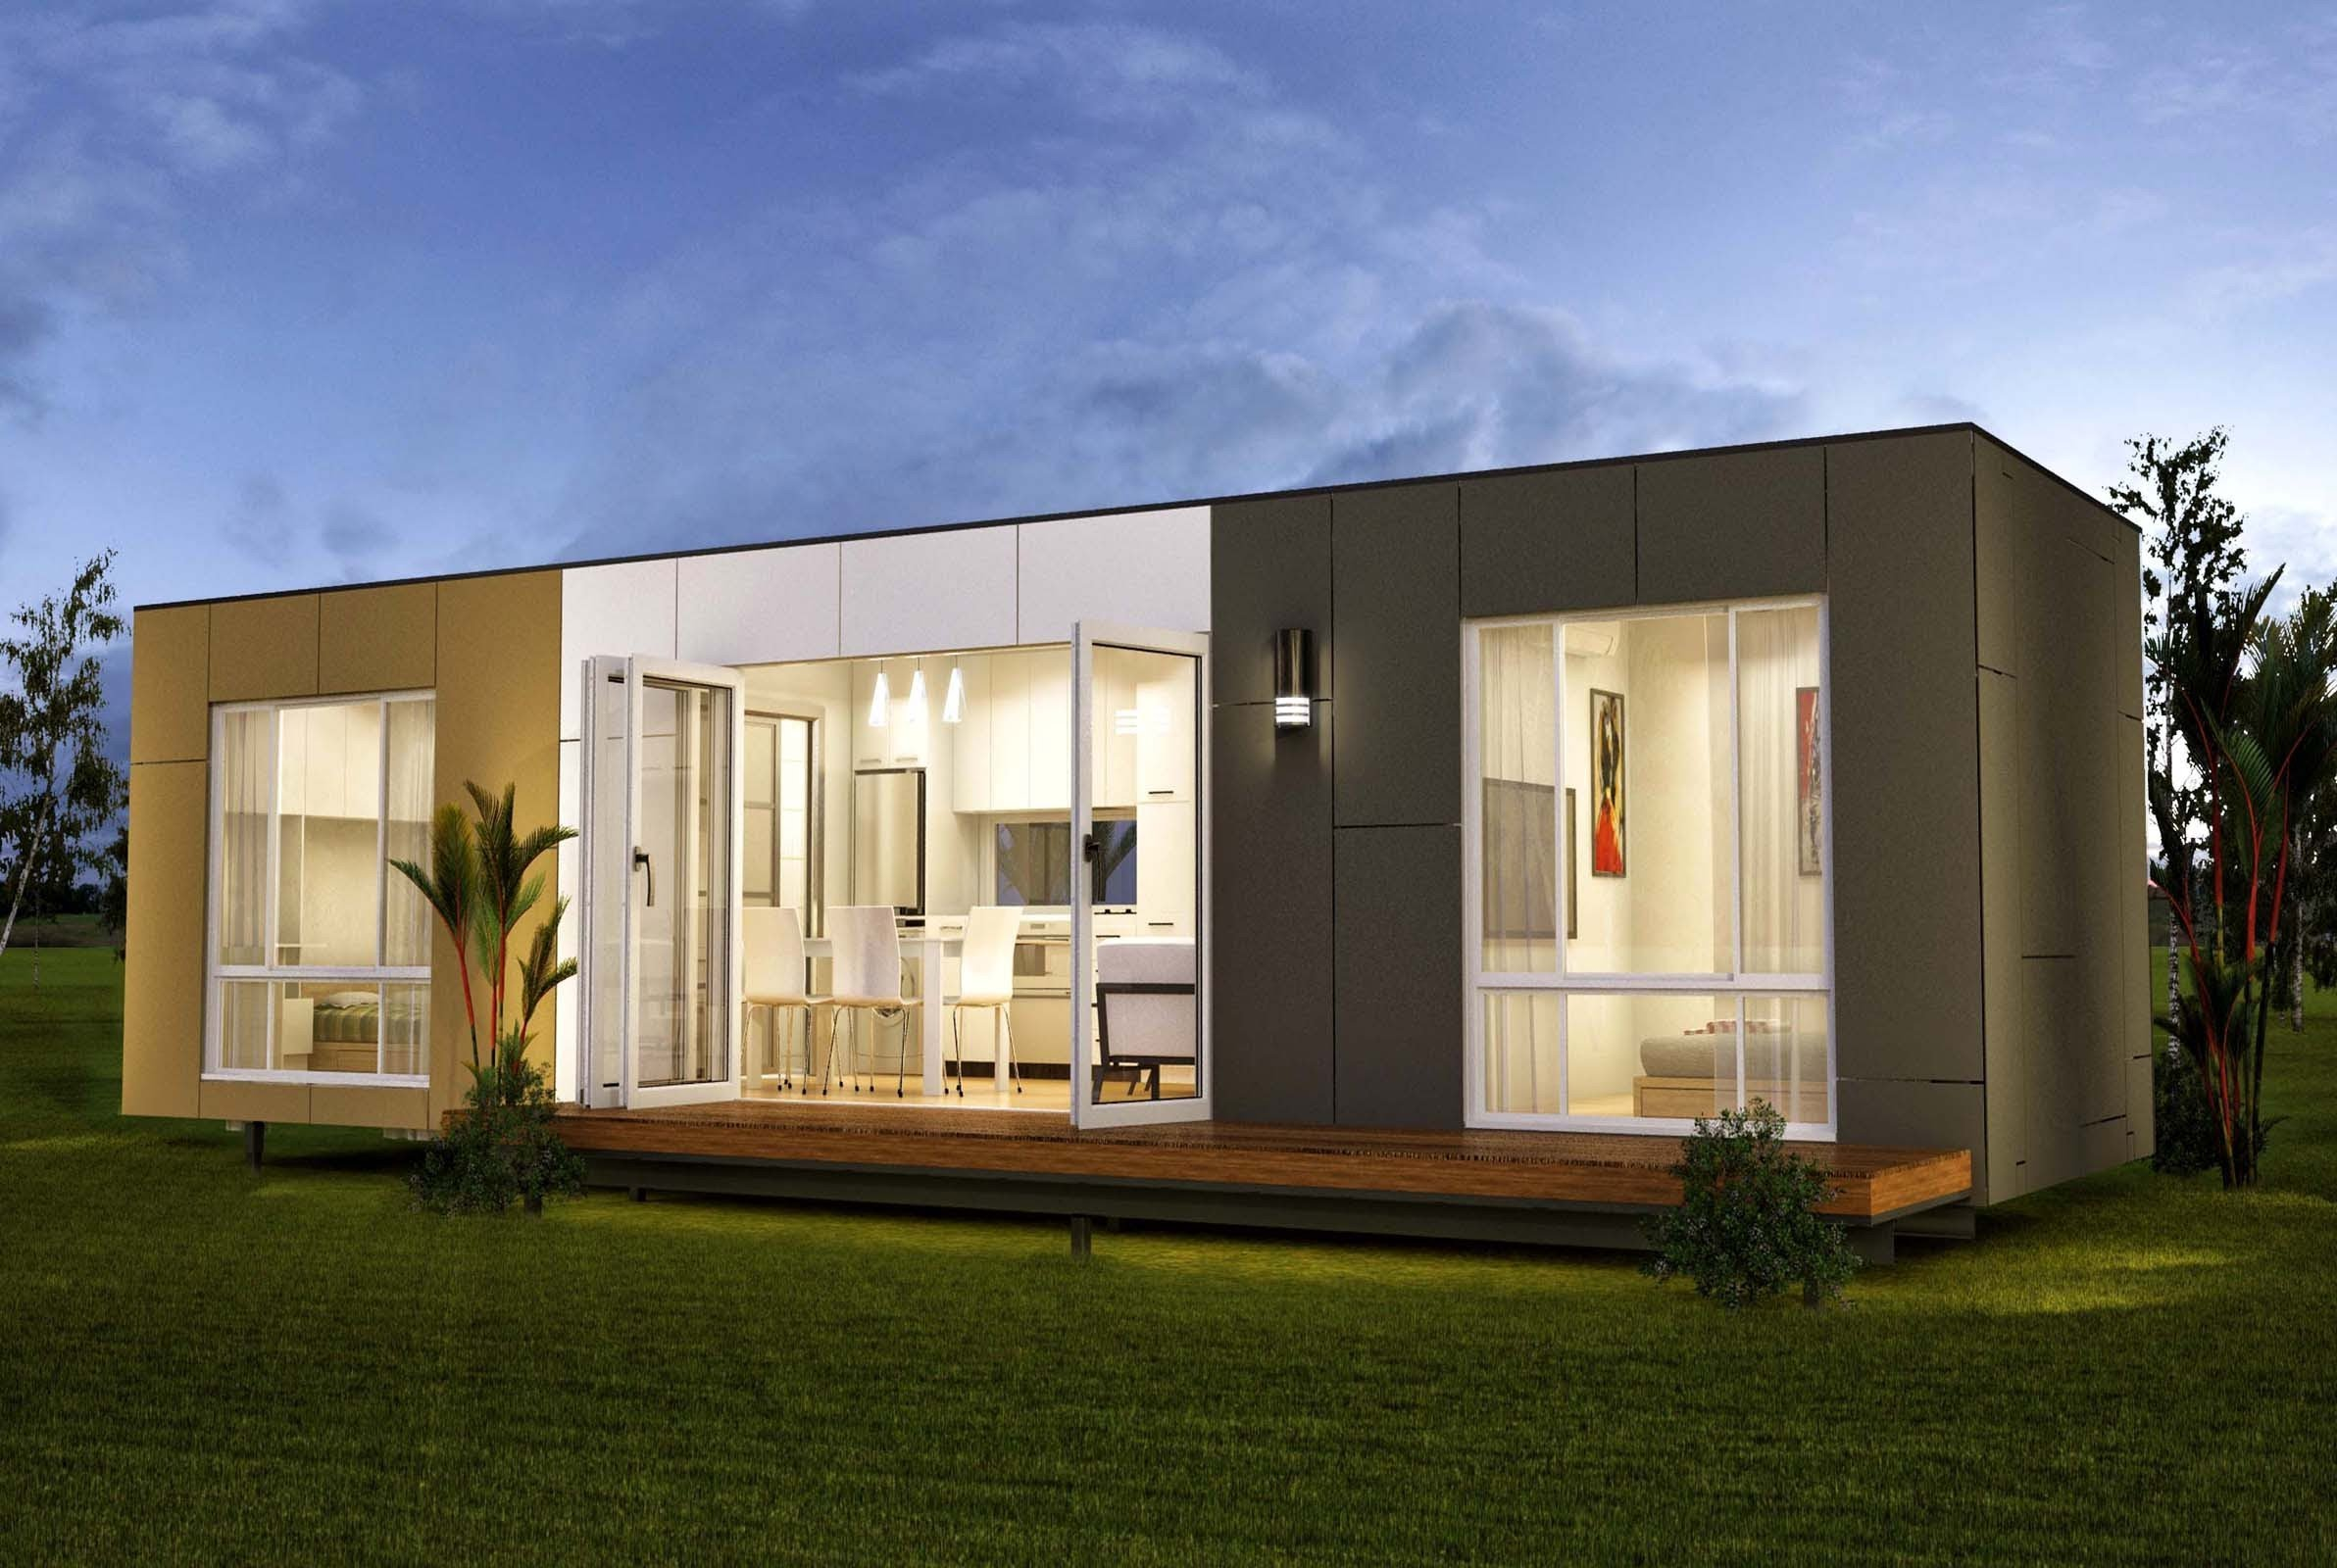 Prefab Container Homes Missouri  photo - 2